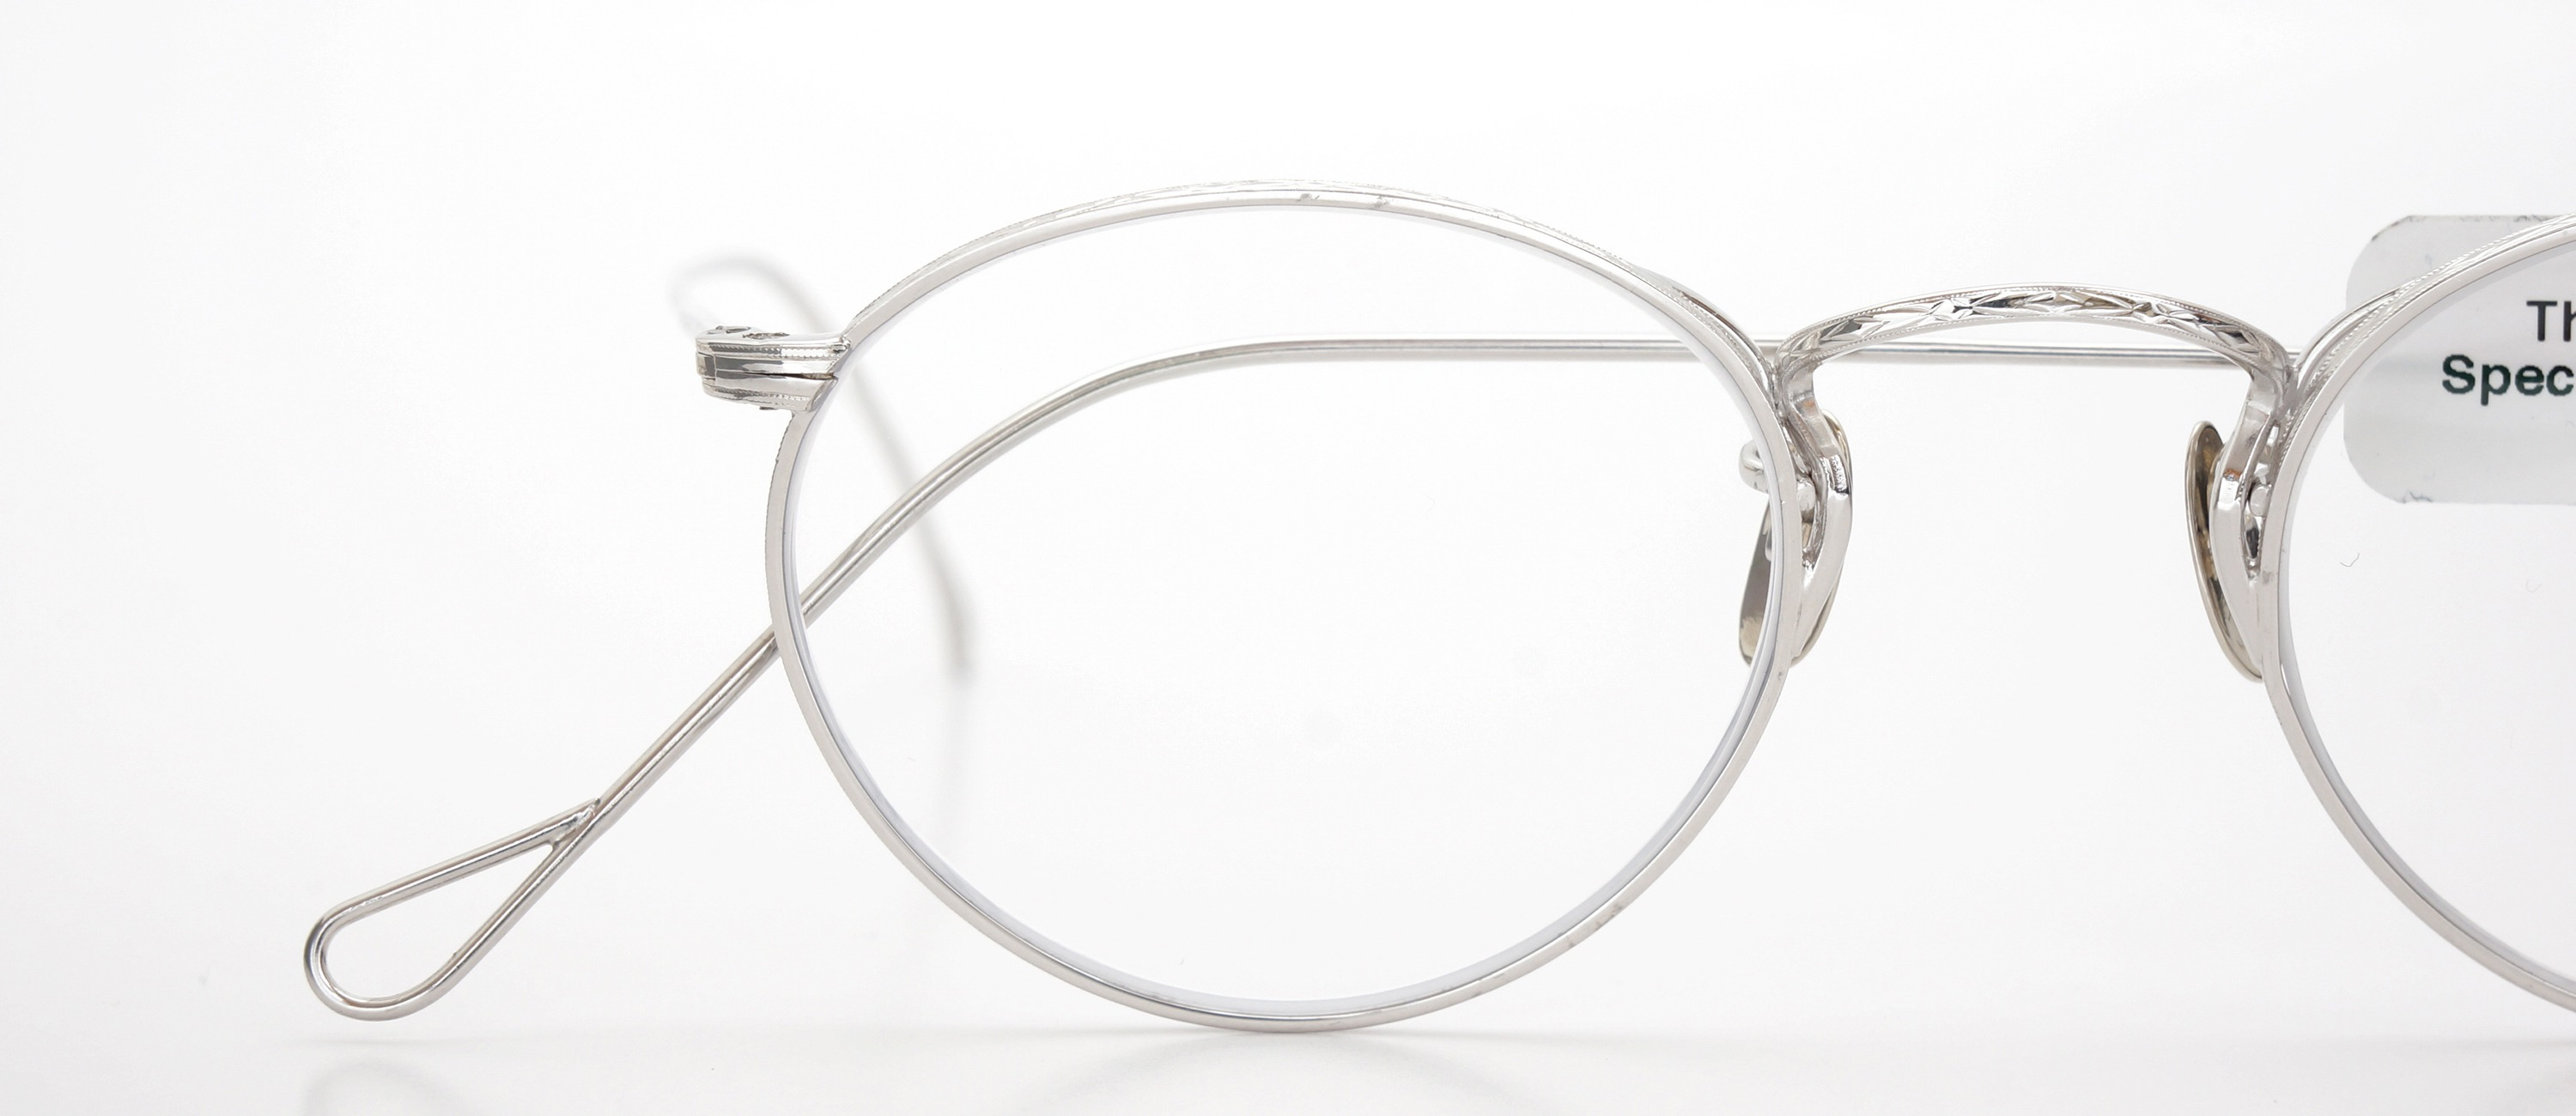 The Spectacle メガネ 1937 Artcraft Optical The-Artbit NOKOROD P-6 WG 12kPads 45-21 イメージ17